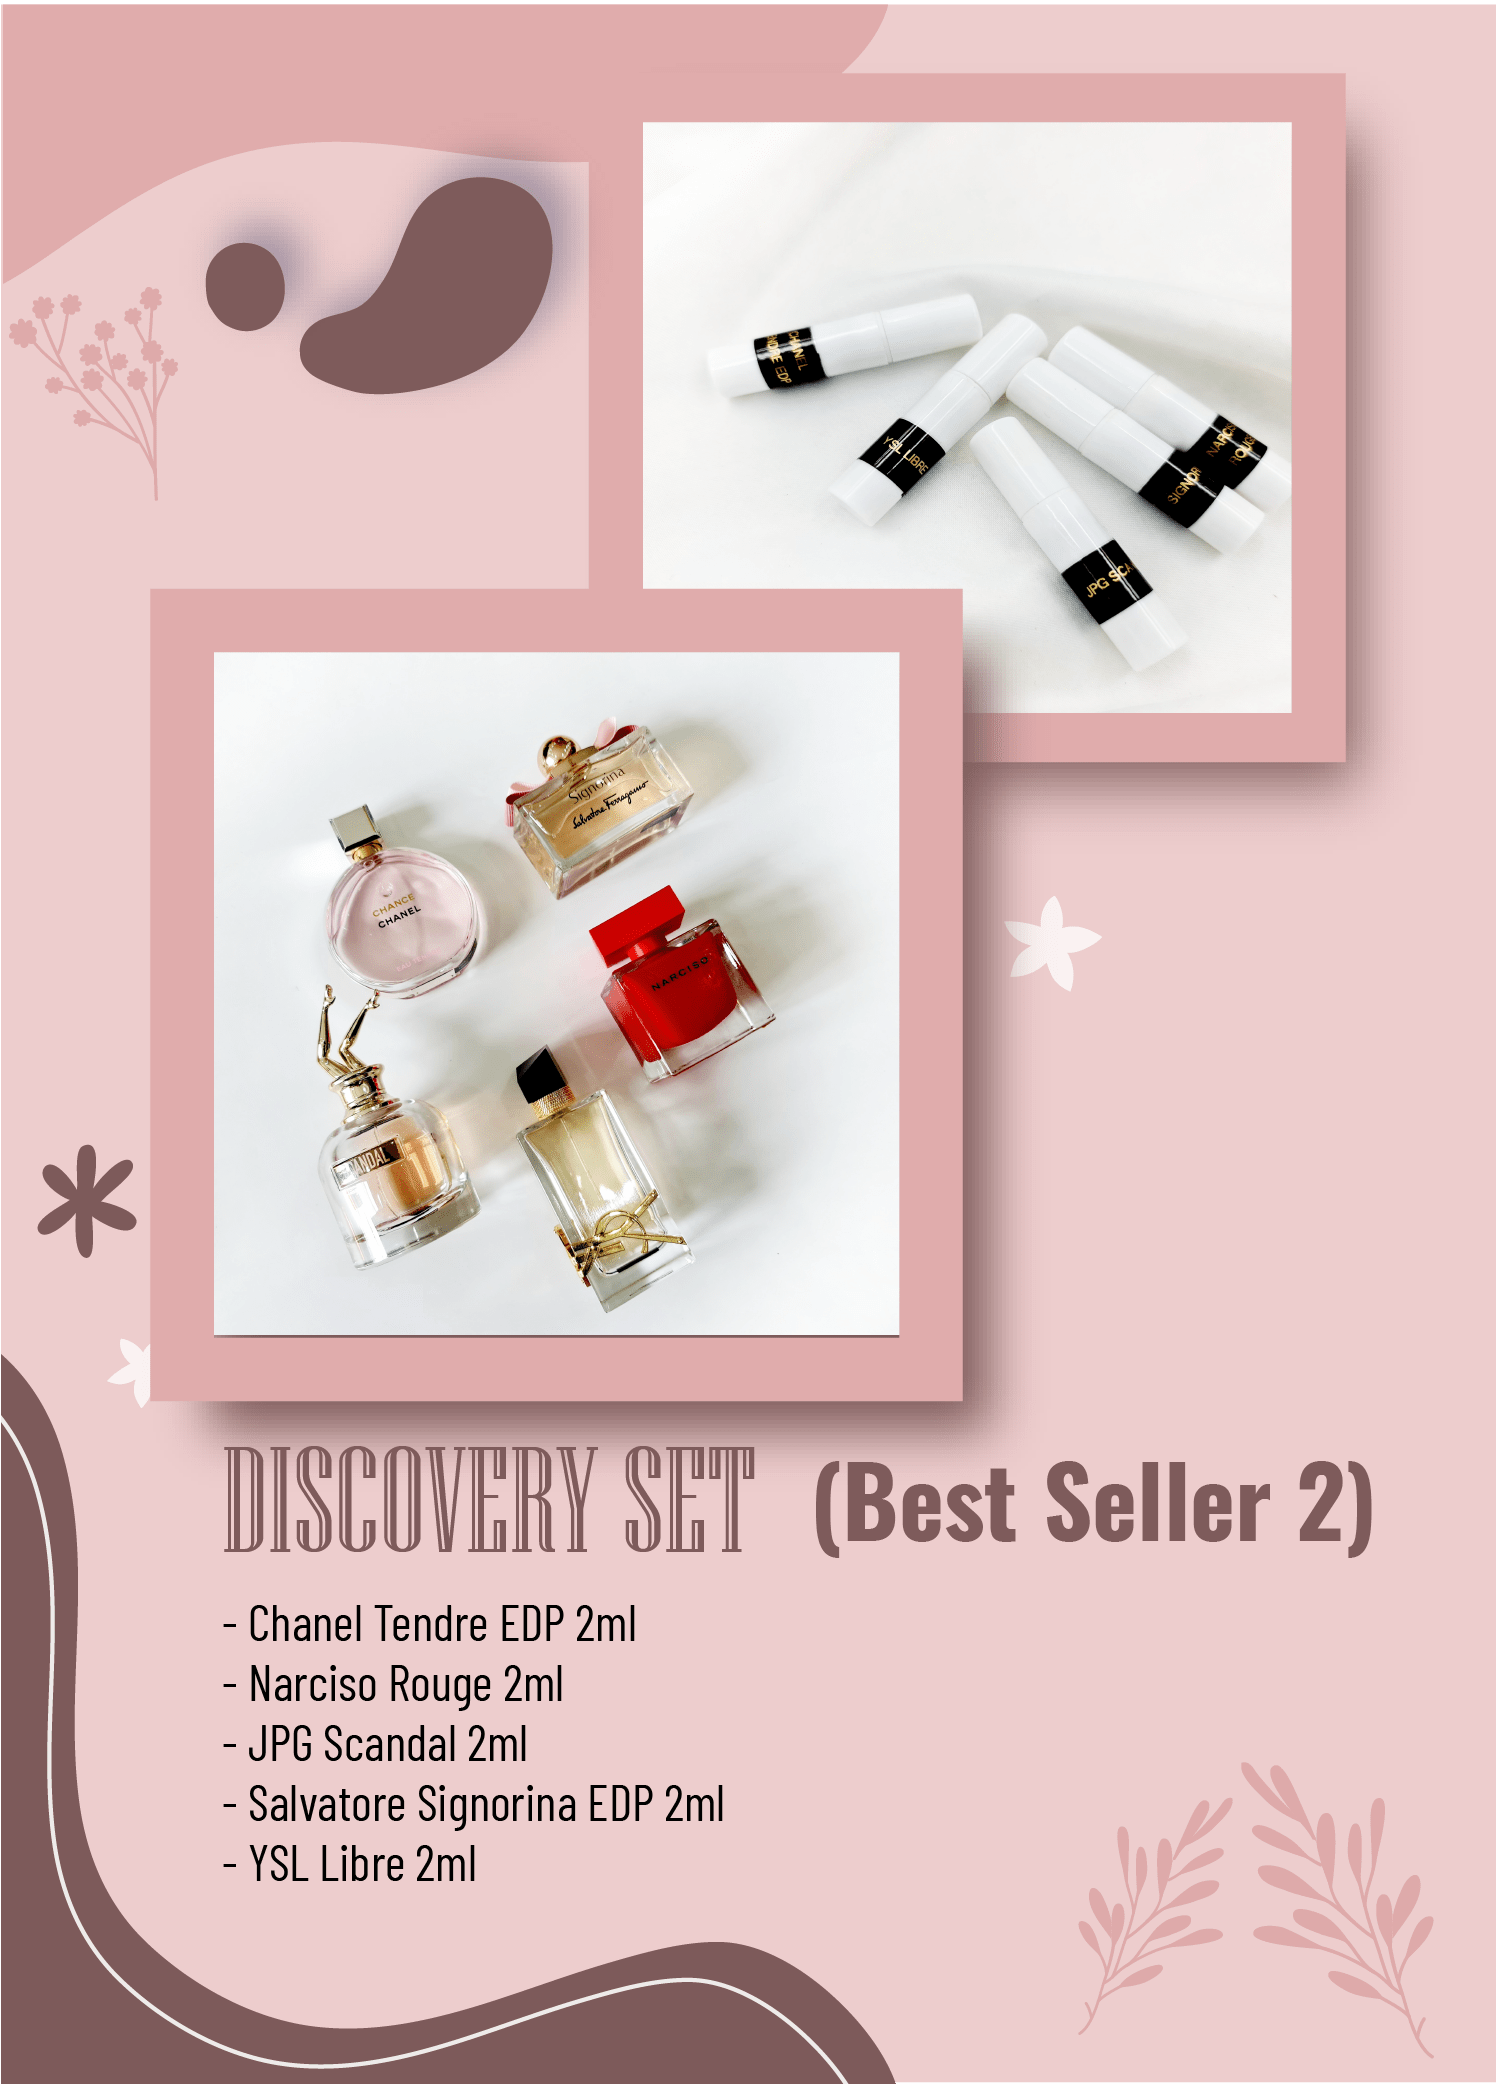 DISCOVERY SET Nữ Best Seller 2 (Chanel Tendre EDP 2ml - Narciso Rouge 2ml - JPG Scandal 2ml - Salvatore Signorina EDP 2ml - YSL Libre 2ml)